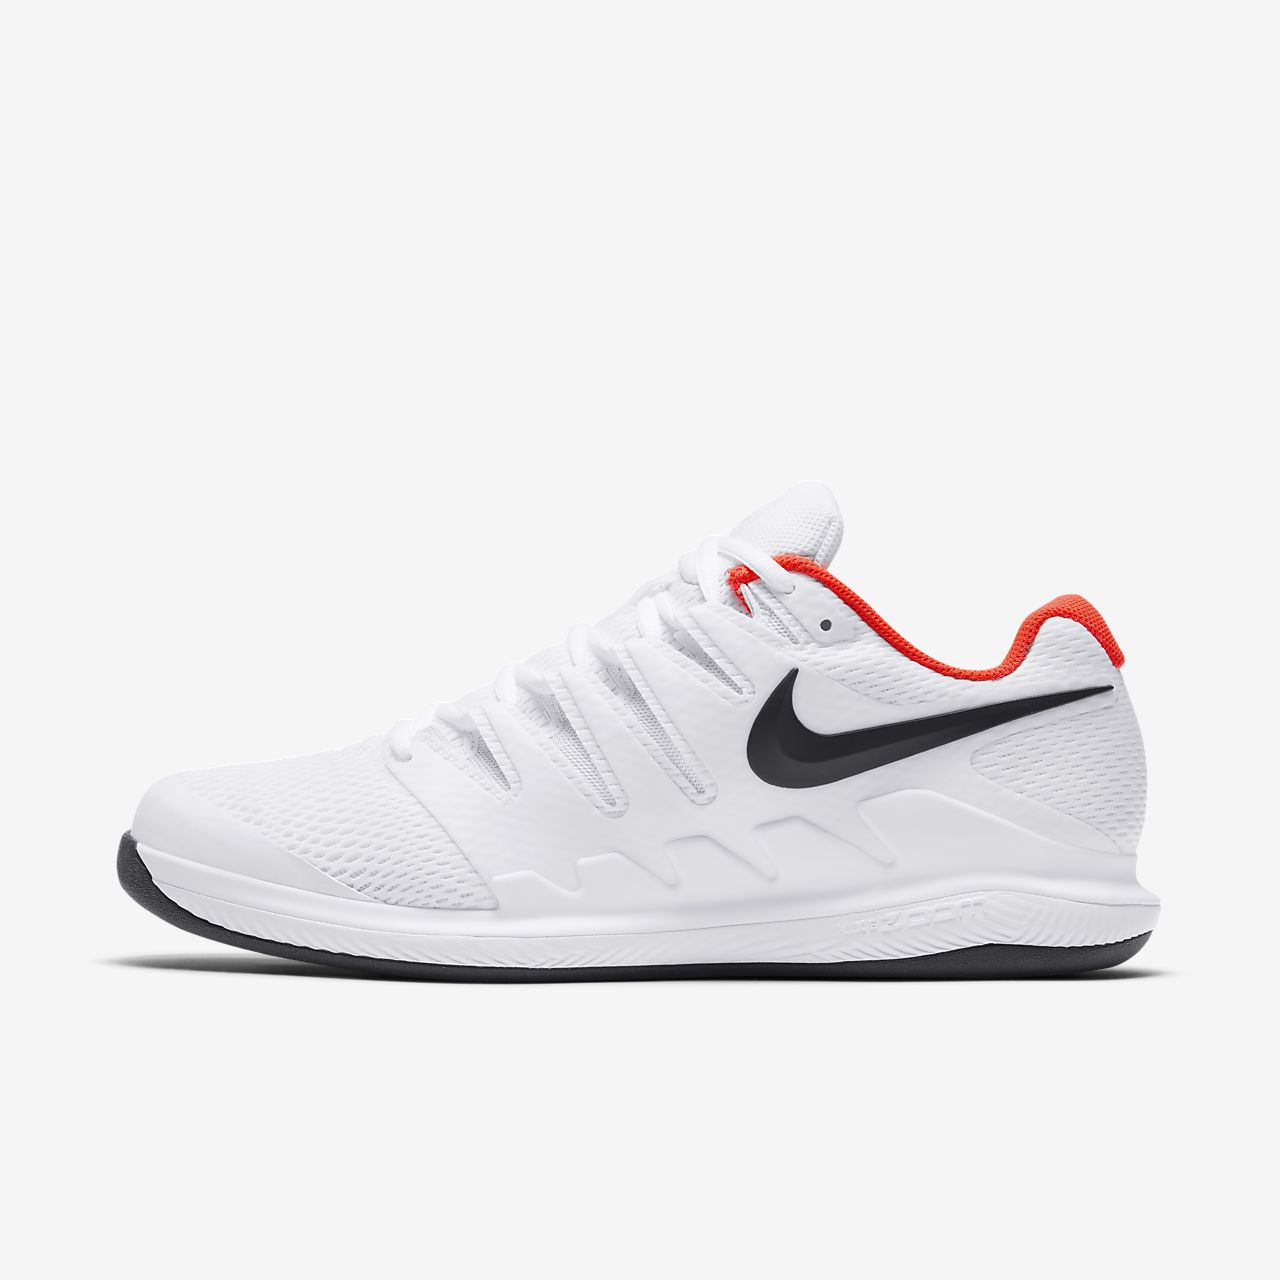 Męskie buty do tenisa Nike Air Zoom Vapor X Carpet